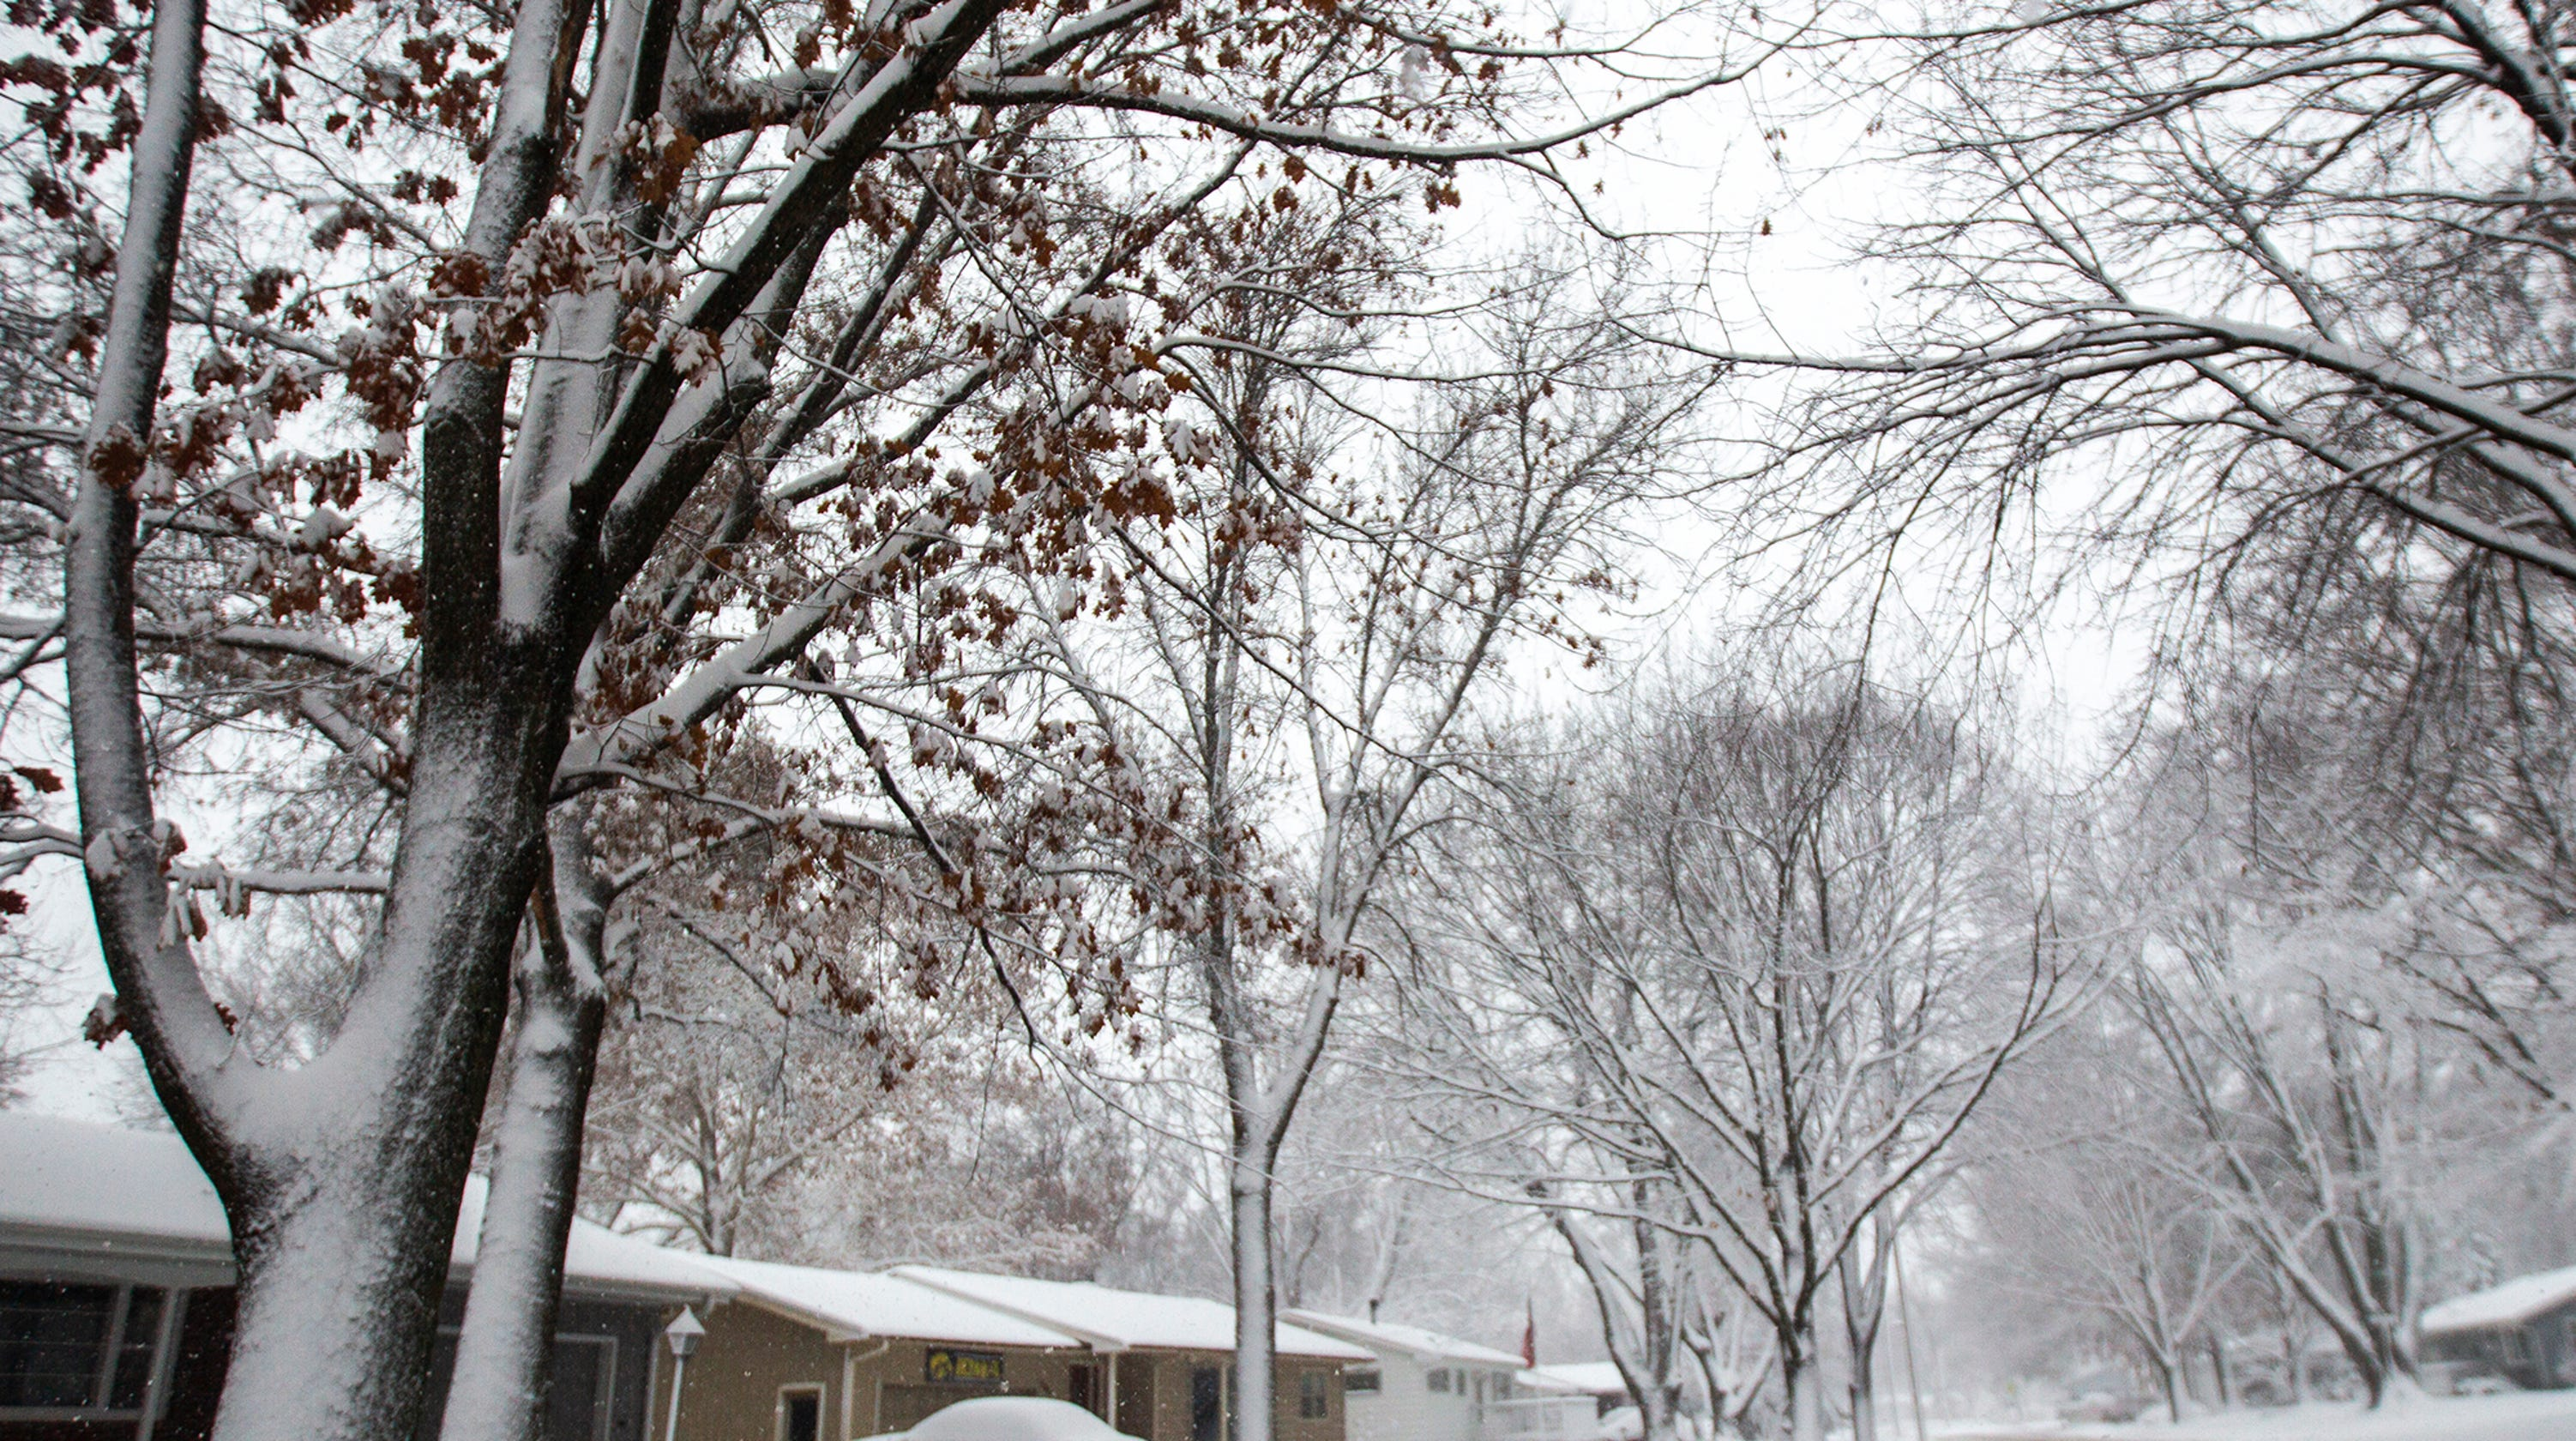 iowa snow blizzard like conditions dump up to 17 inches of snow